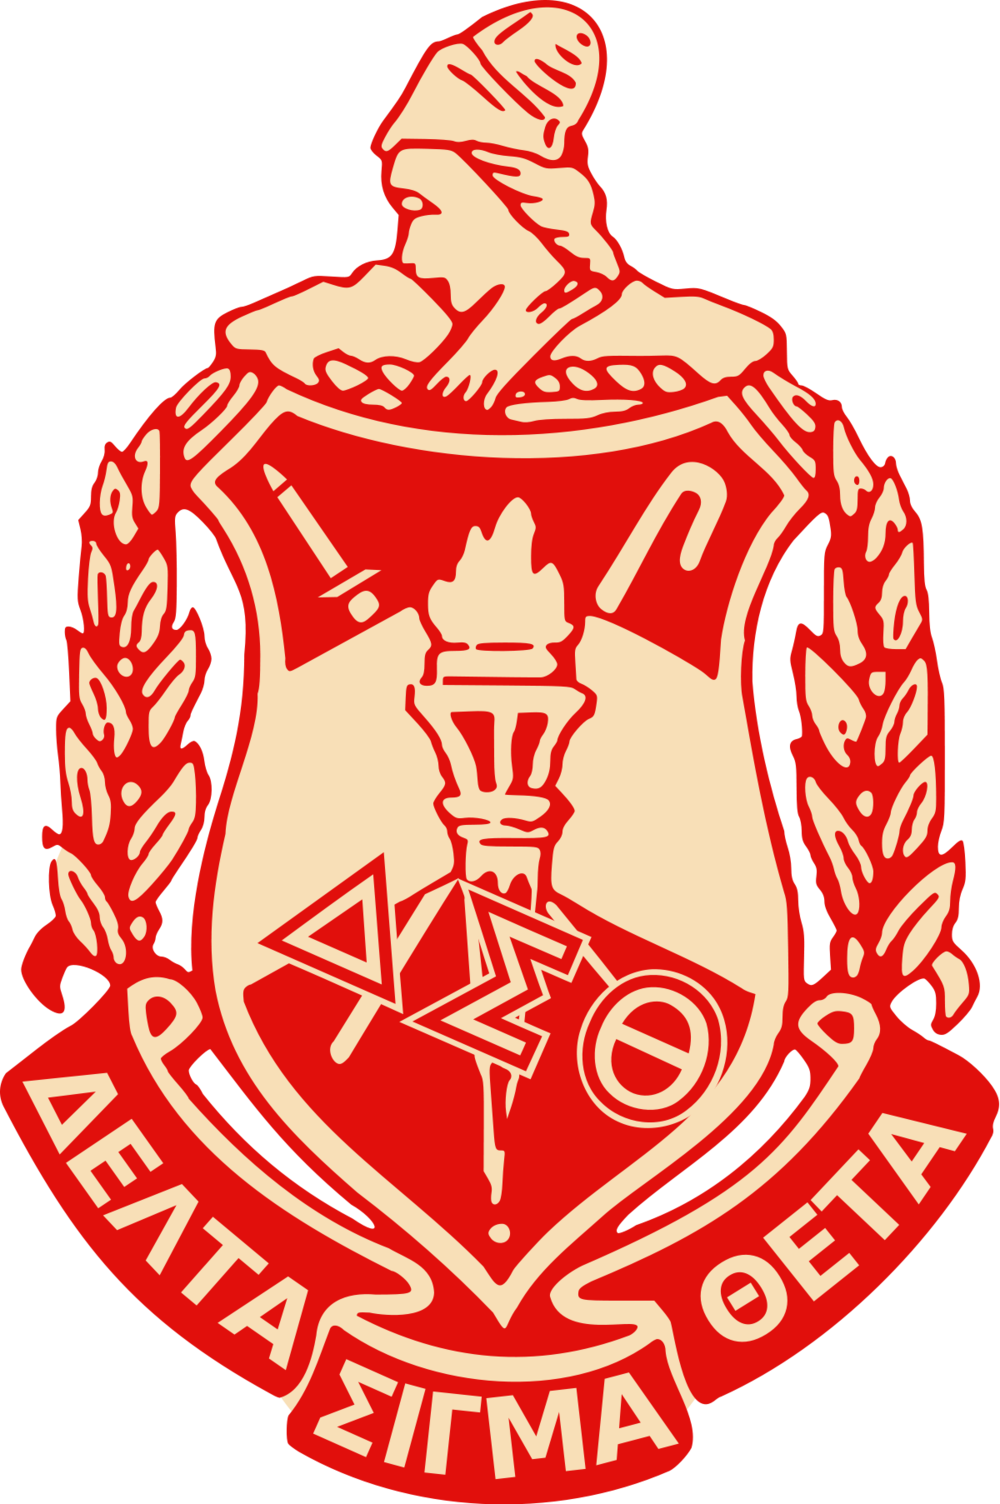 Each year Delta Sigma Theta Sorority, Inc., Los Angeles Alumnae Chapter assists African-American students in attaining their goal for post-secondary education through our annual scholarship program. -